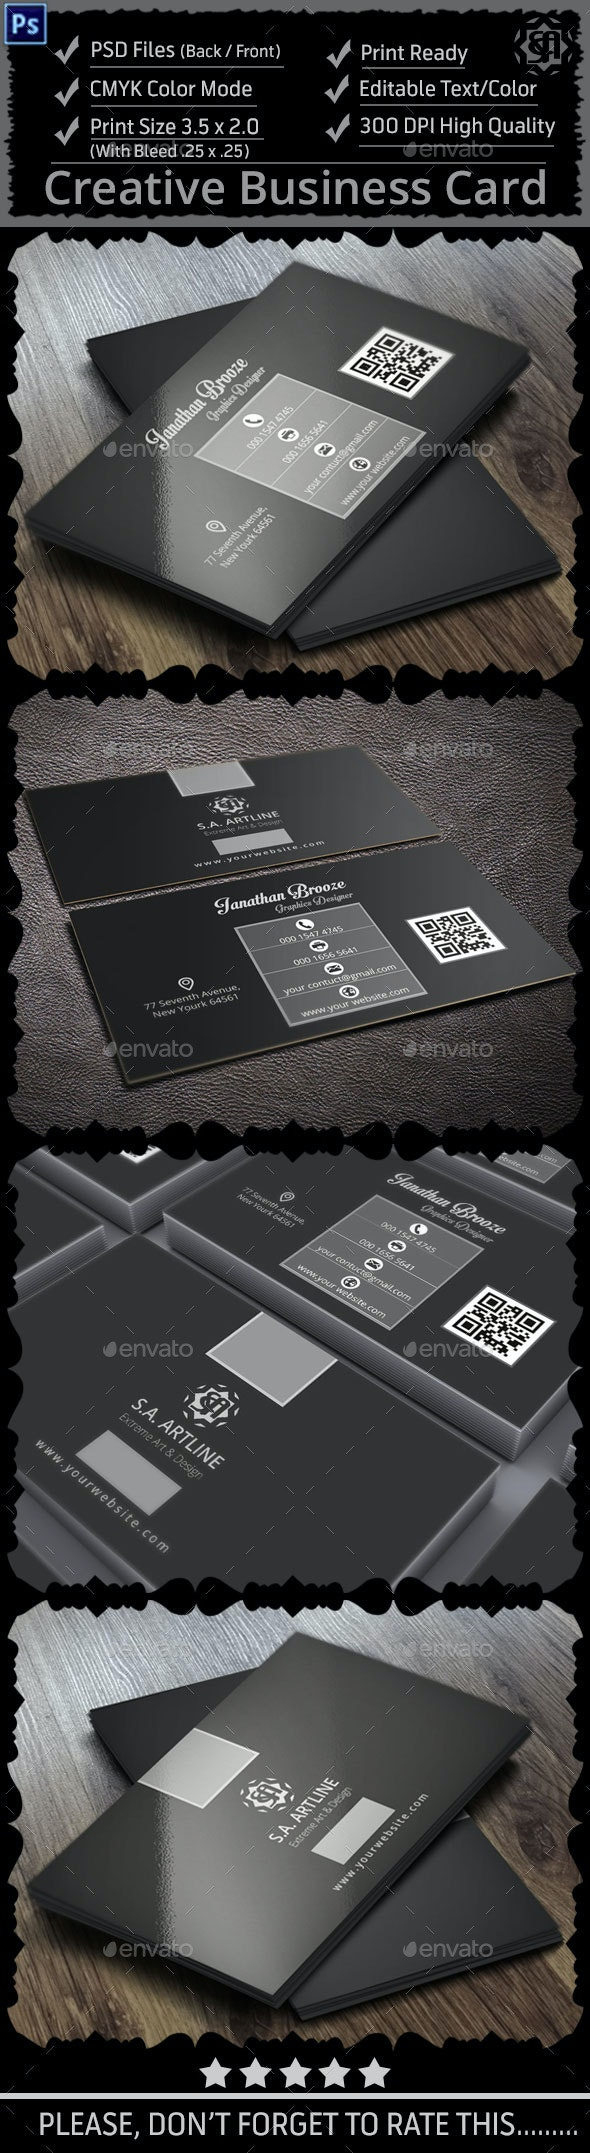 Black & White Creative Business Card - Creative Business Cards